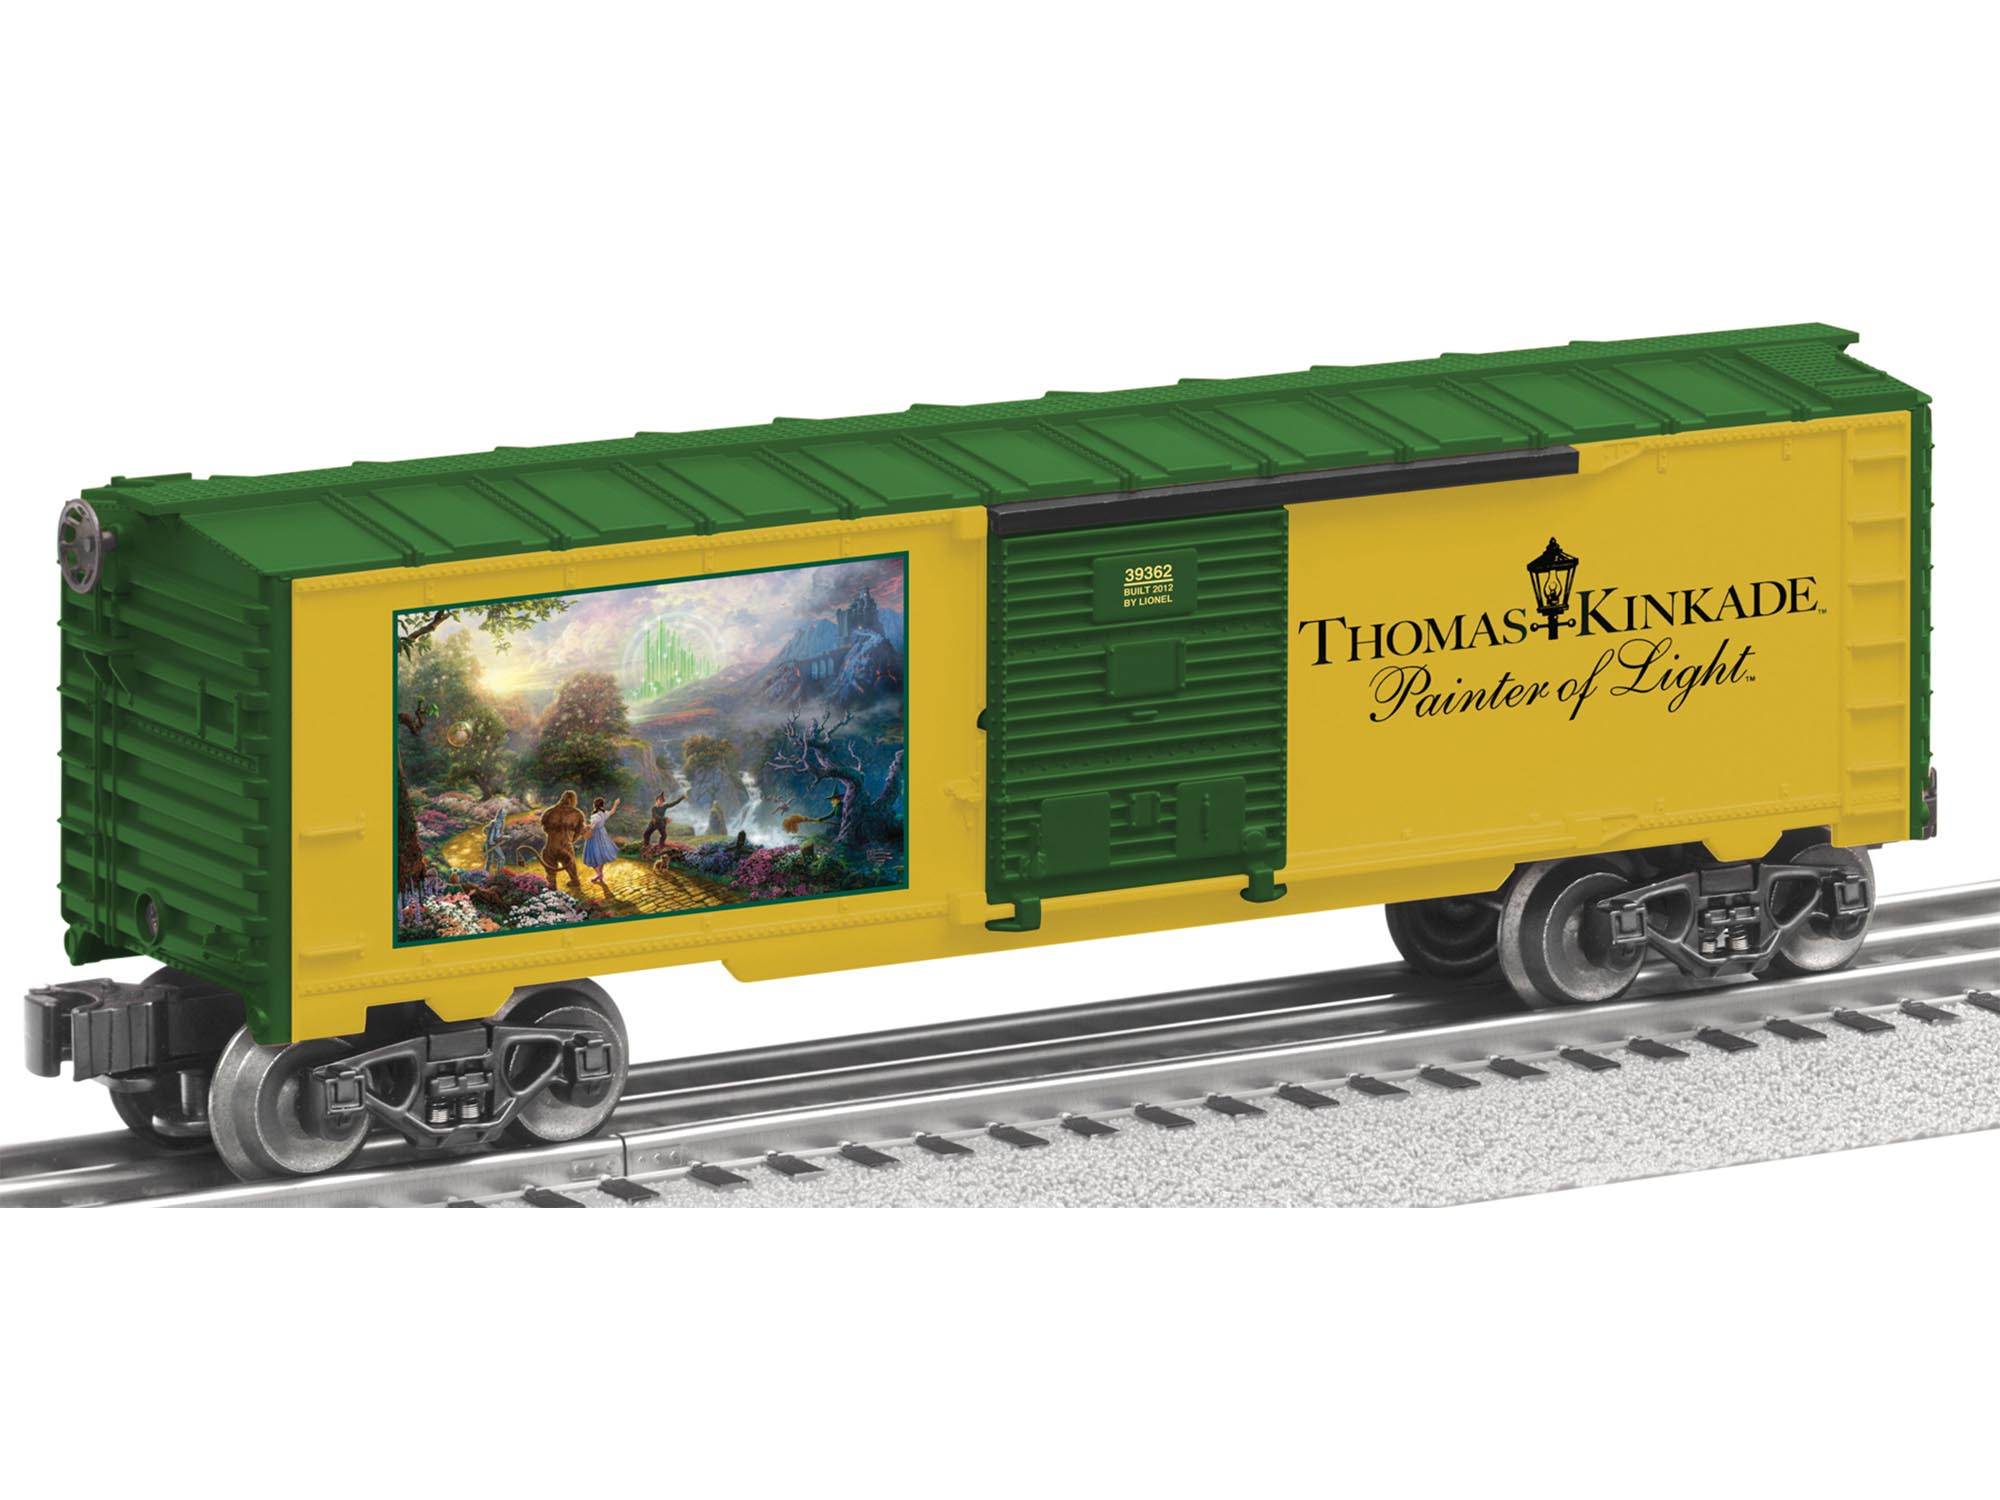 6-39362 THOMAS KINKADE EMERALD CITY BOXCAR